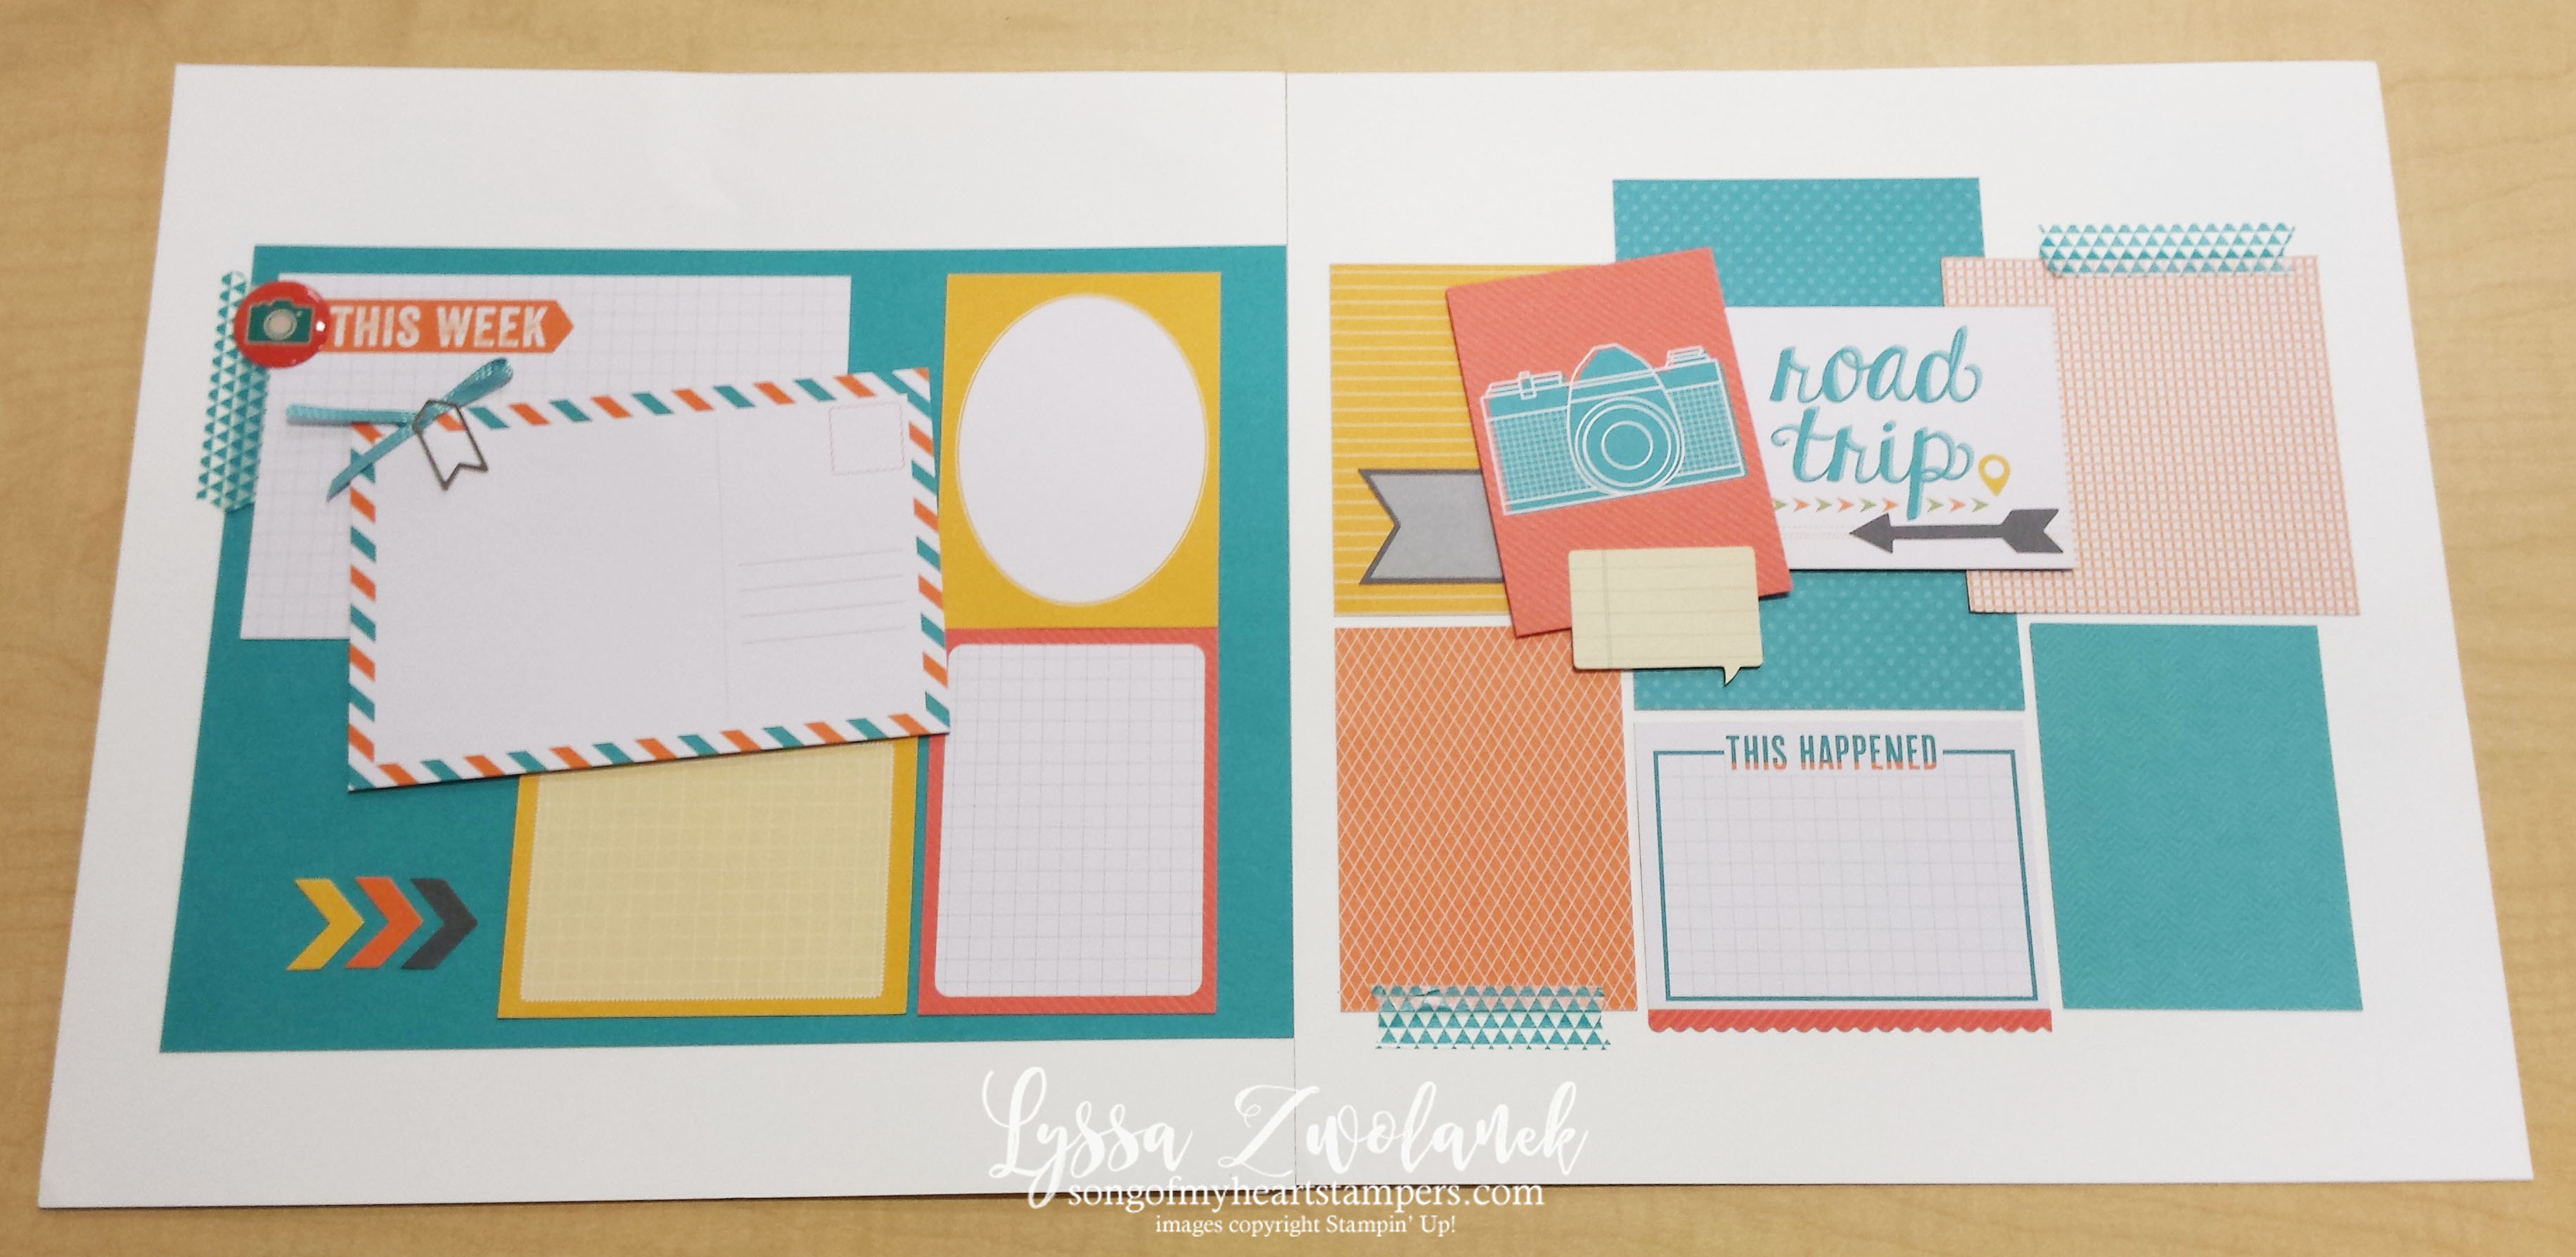 4x4 Scrapbooking Classes Four Month Local And Online Options